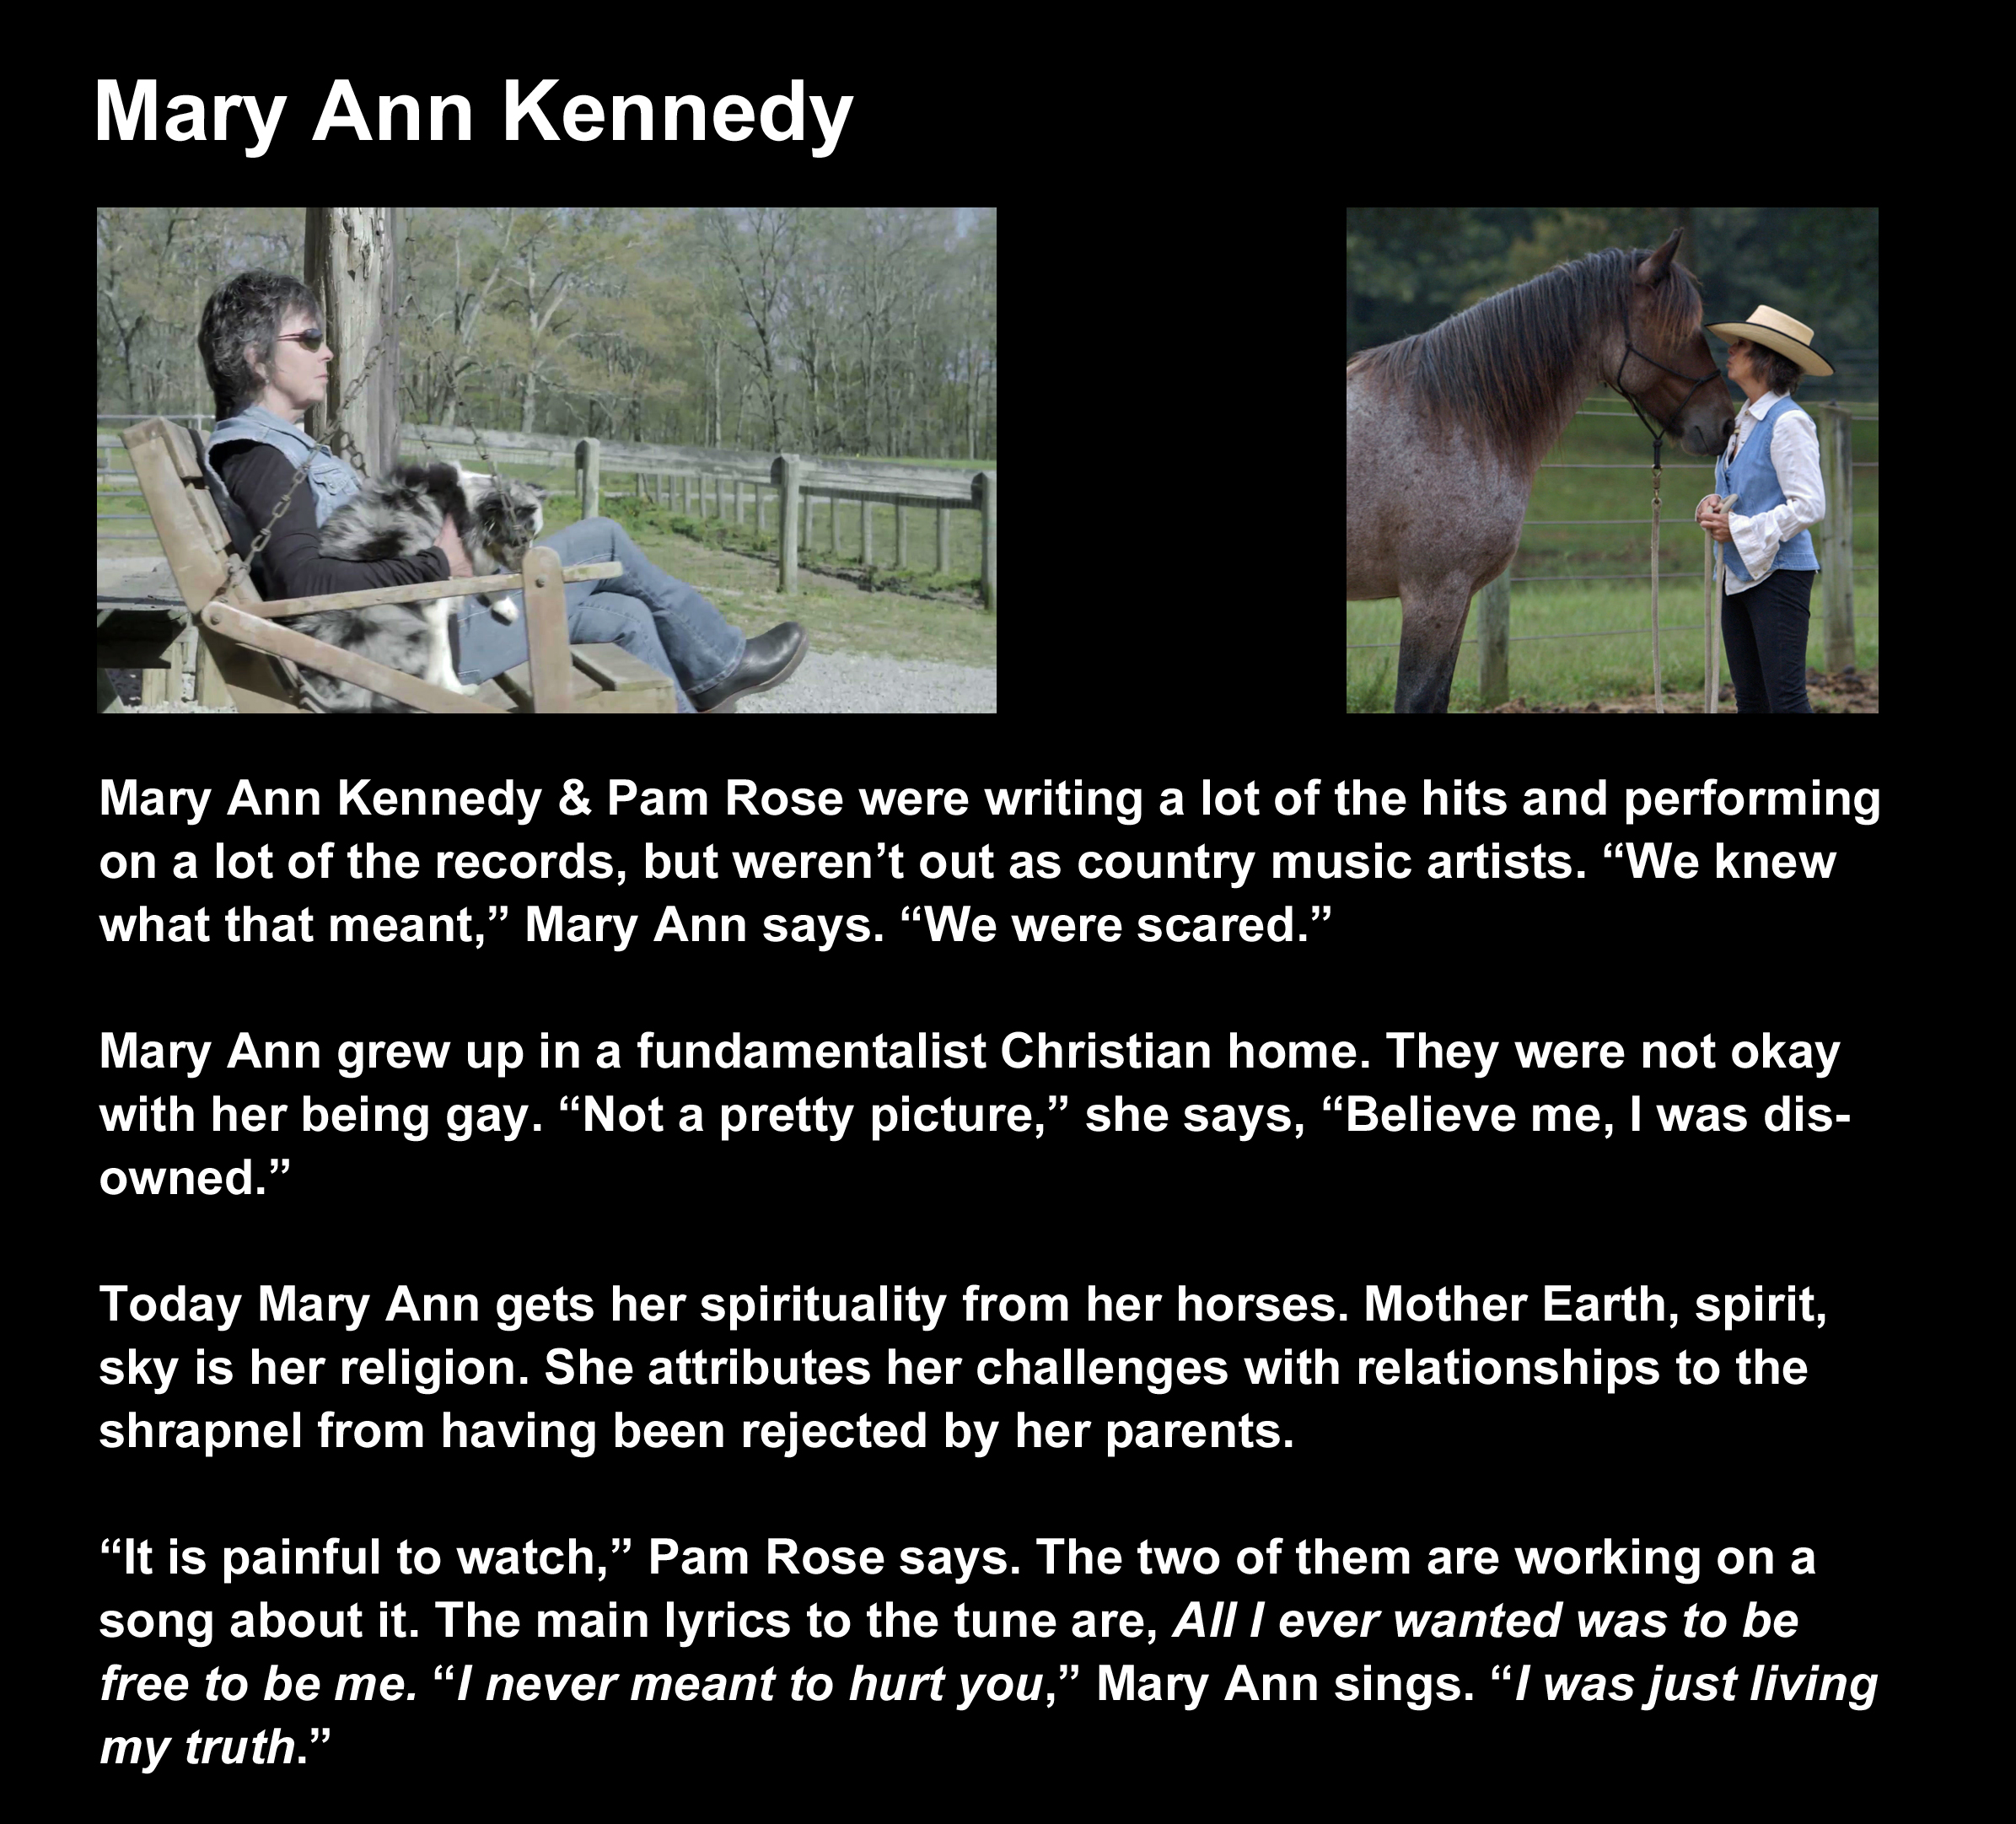 mary ann kennedy bio.jpg